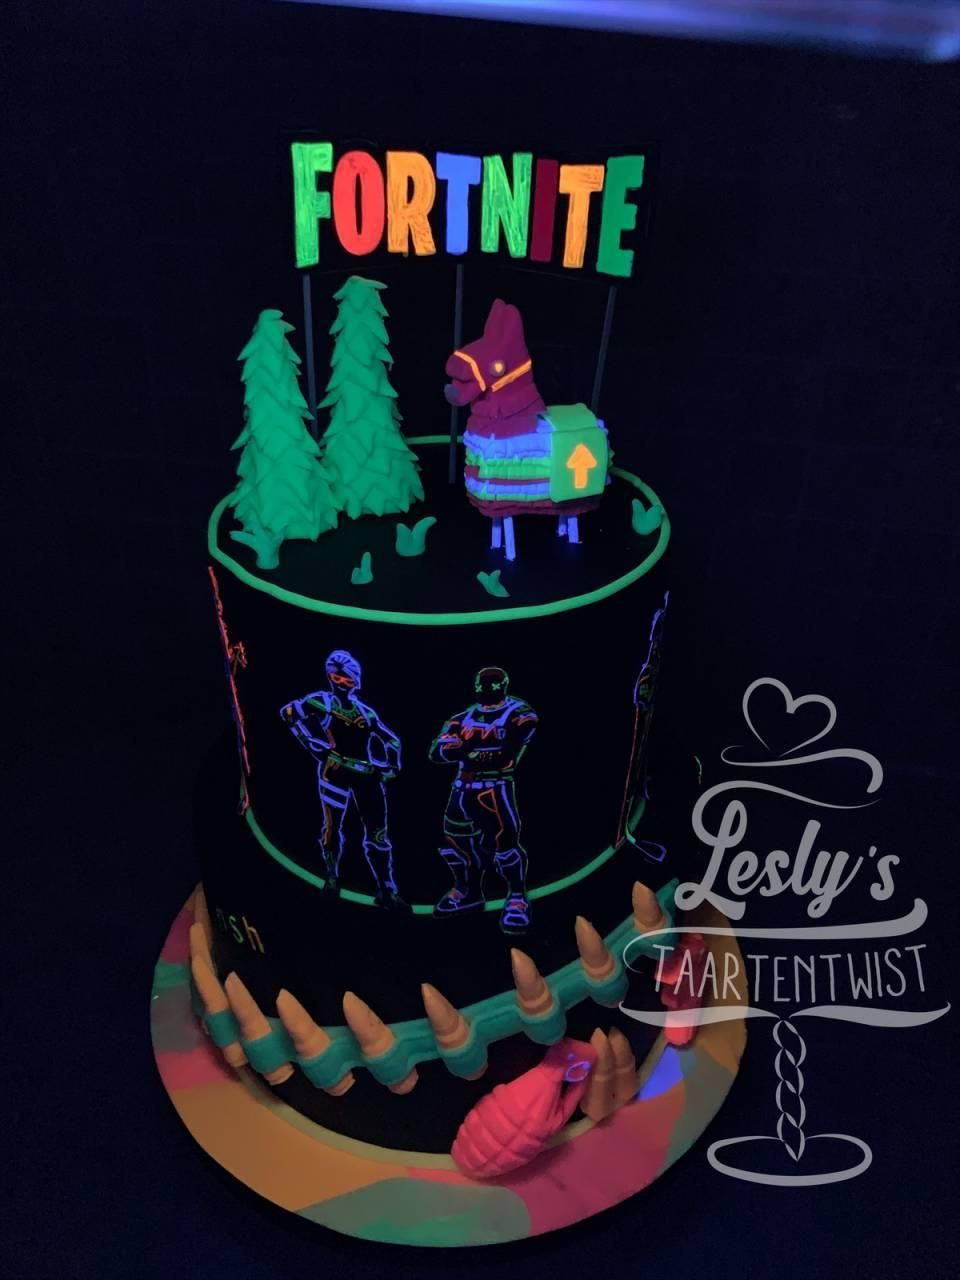 glow in the dark fortnite